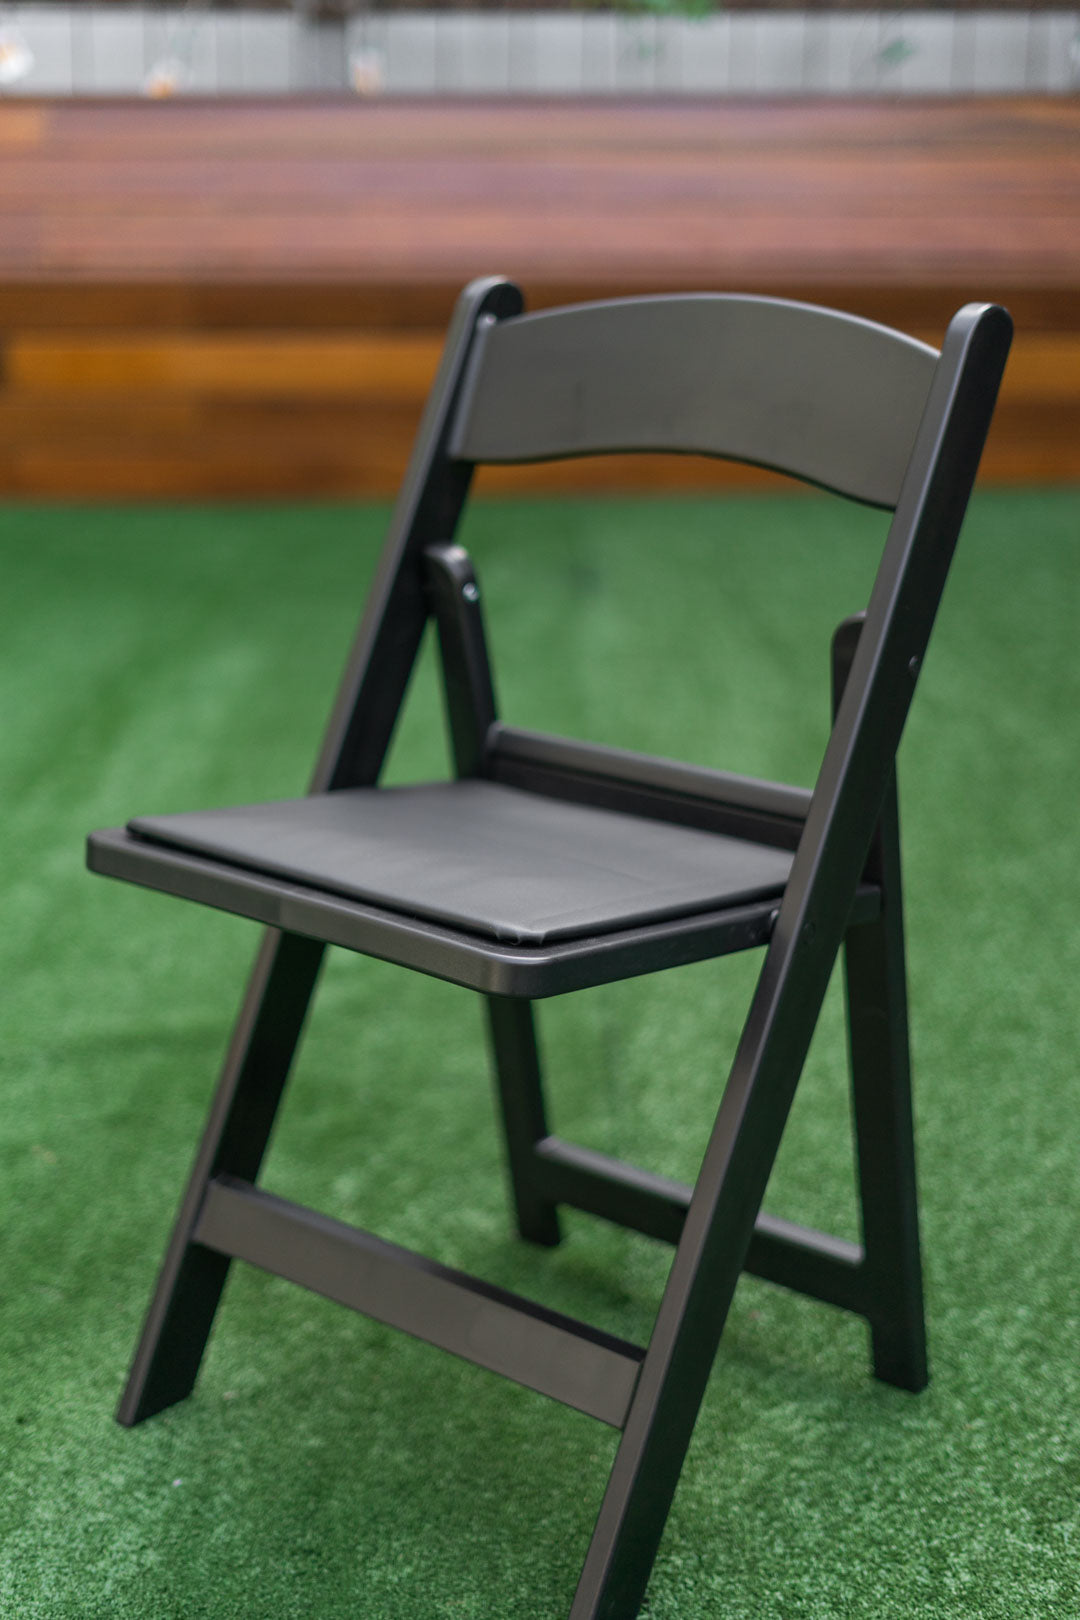 black plastic americana chair